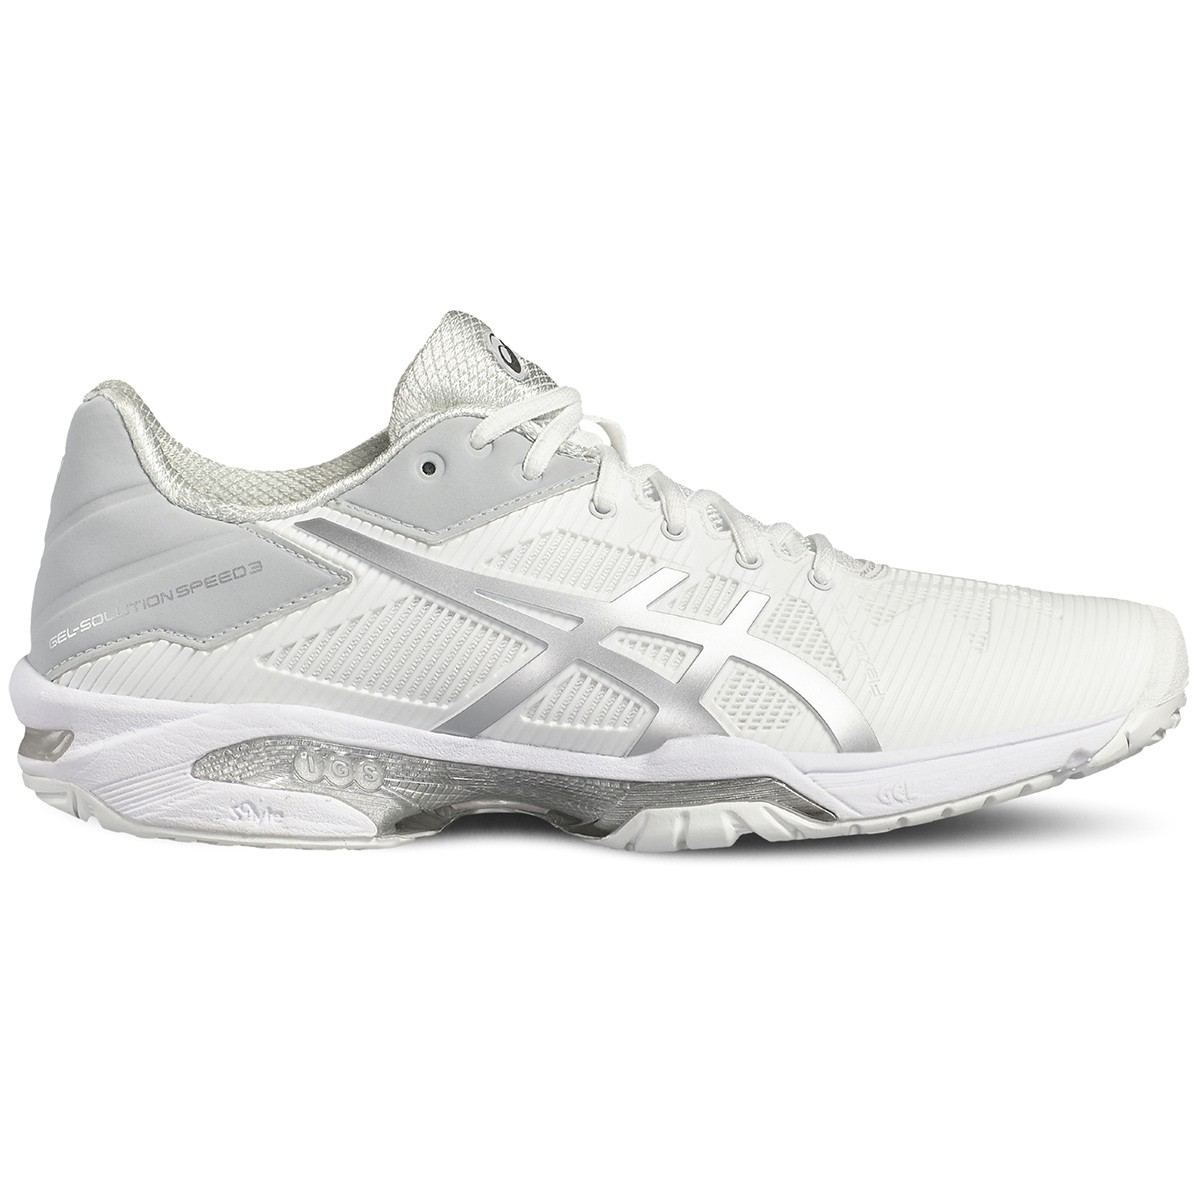 Asics Homme De Course Blanches Chaussures 6gfYbvI7y